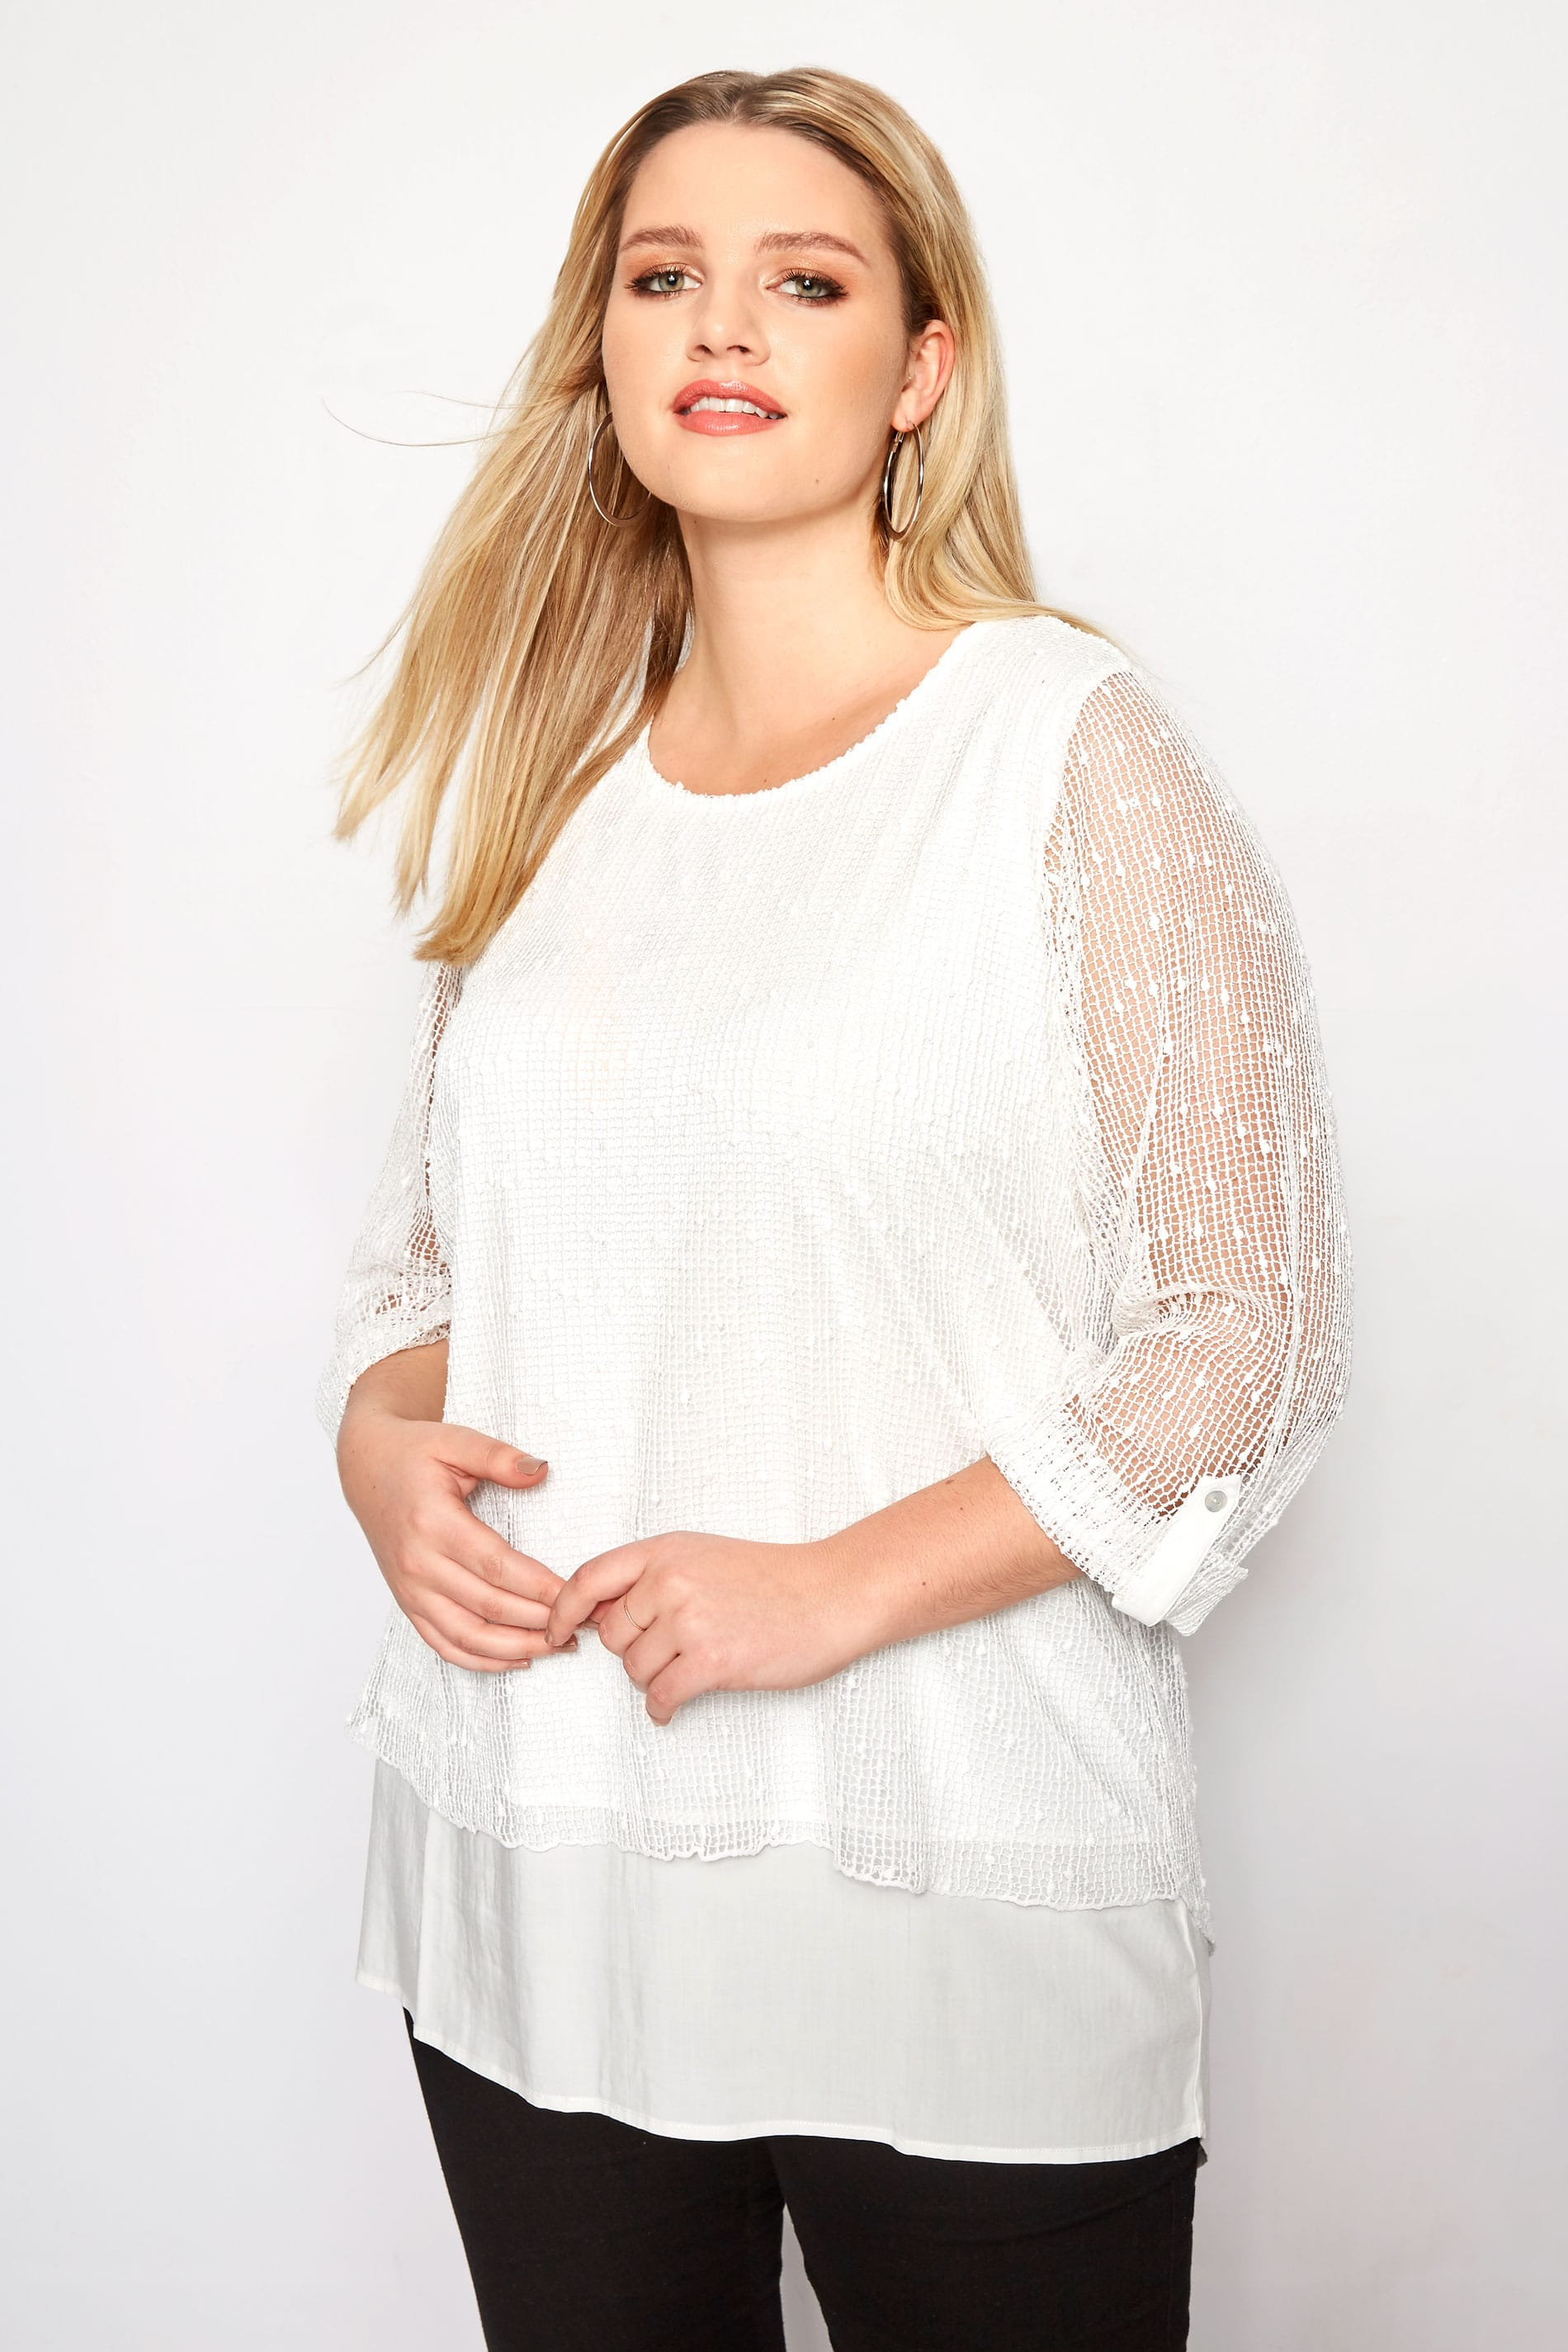 Plus Size Ivory Layered Crochet Top  Sizes 16 To 36 -2251